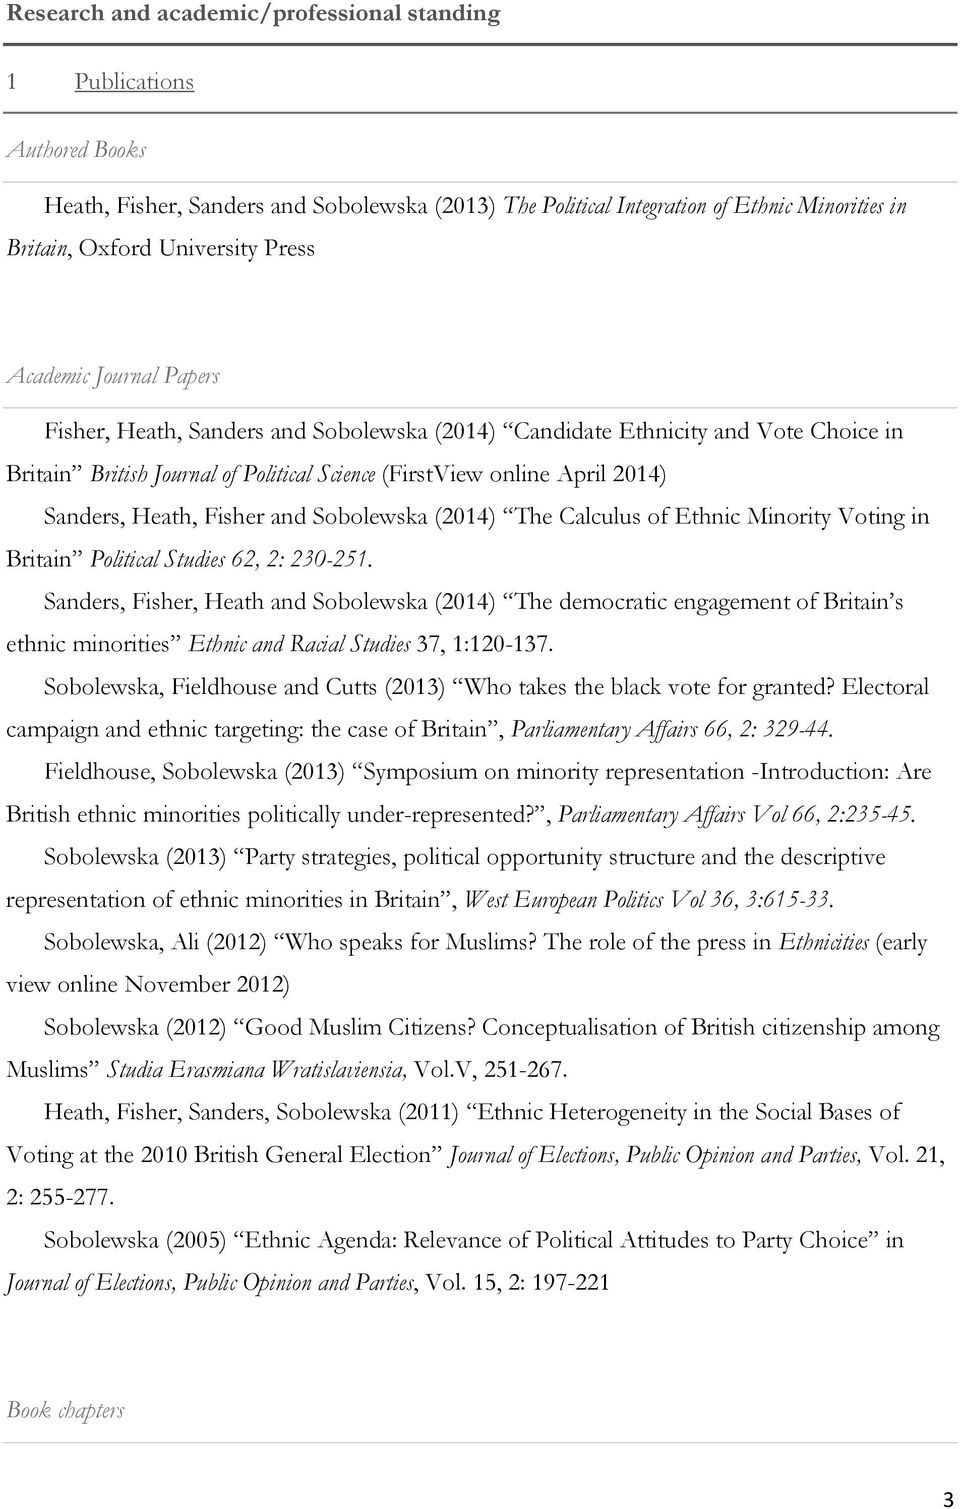 Heath, Fisher and Sobolewska (2014) The Calculus of Ethnic Minority Voting in Britain Political Studies 62, 2: 230-251.